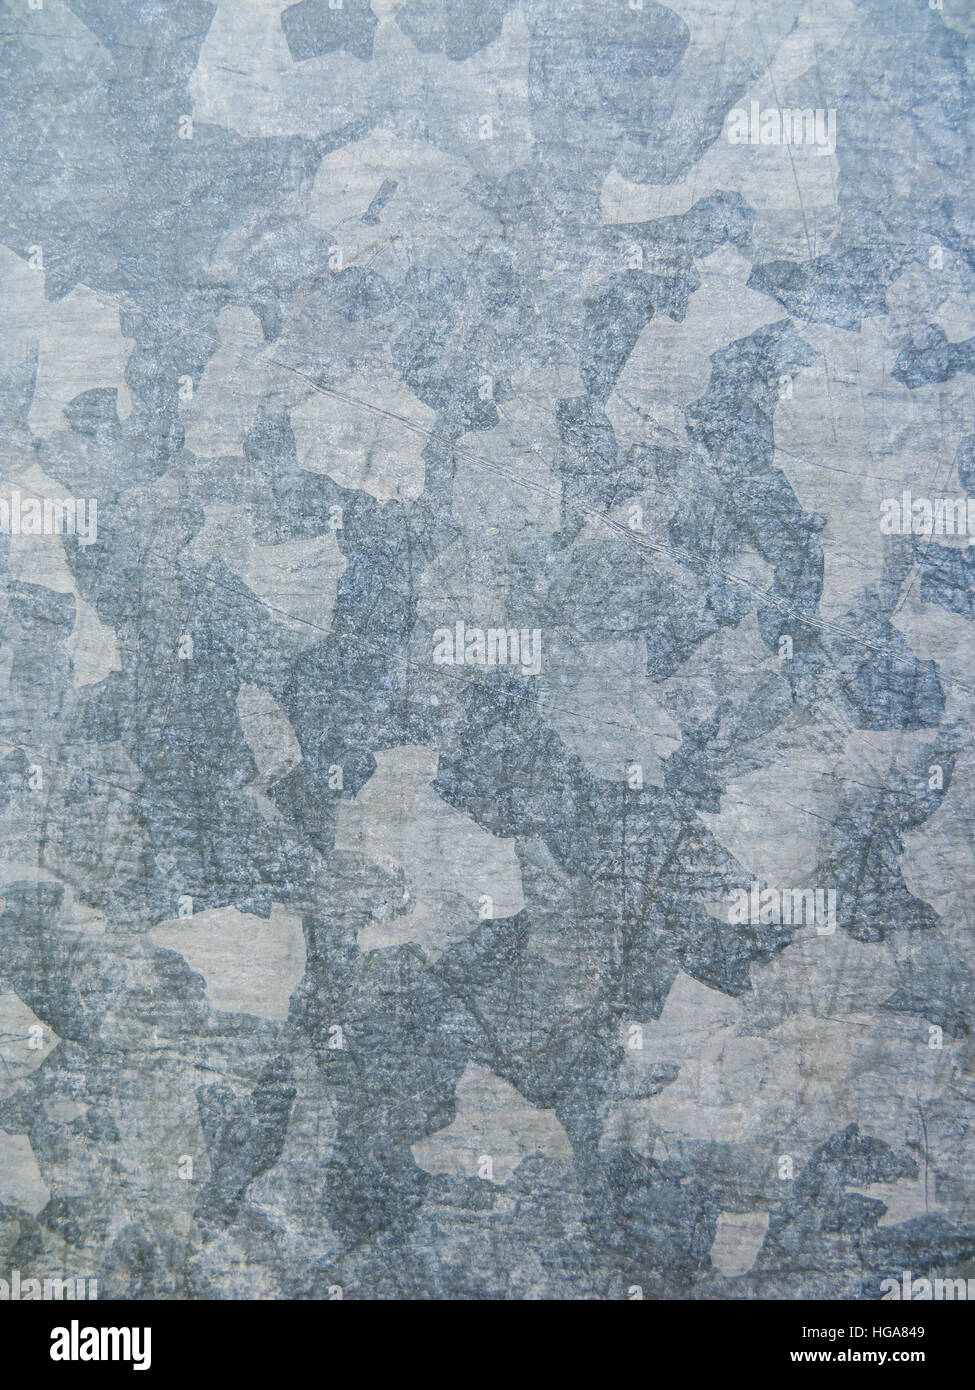 Galvanized plated metal surface background. Urban camouflage effect. - Stock Image